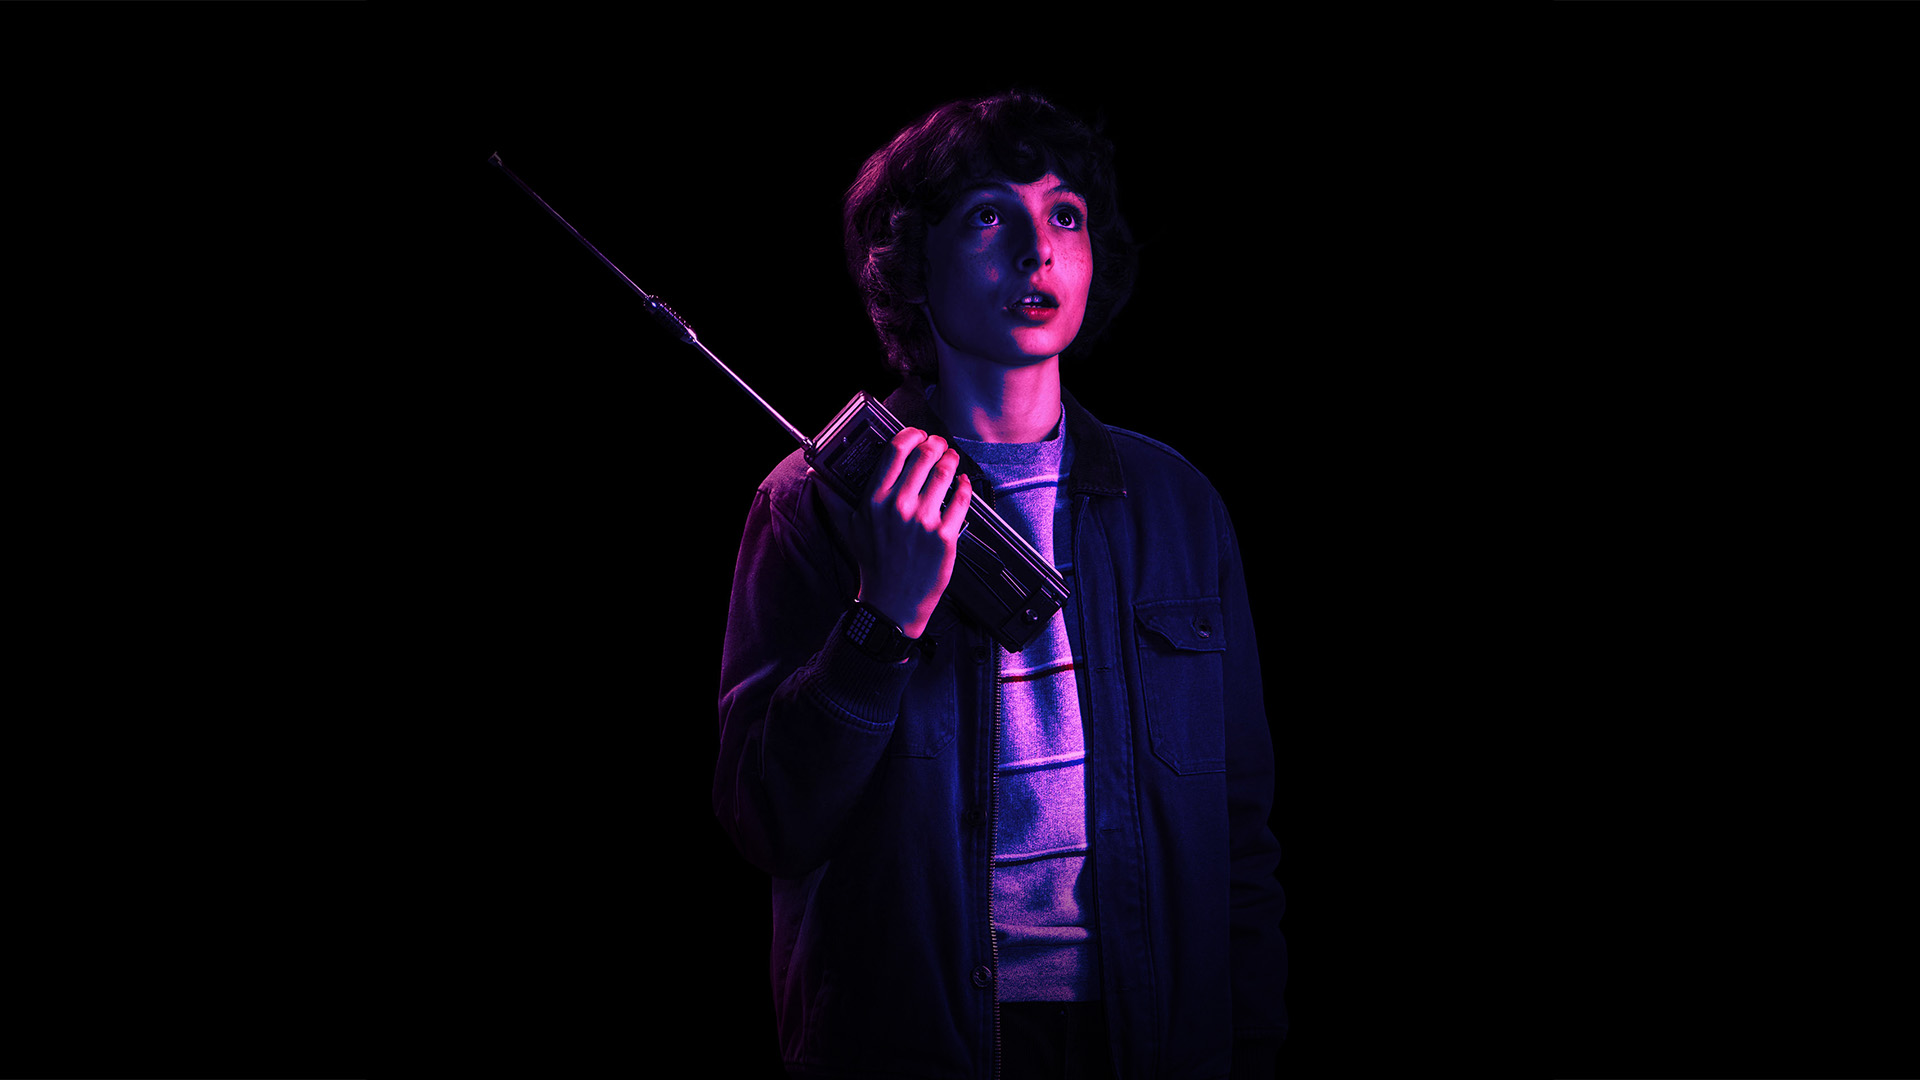 Mike Stranger Things Season 2 Hd Tv Shows 4k Wallpapers Images